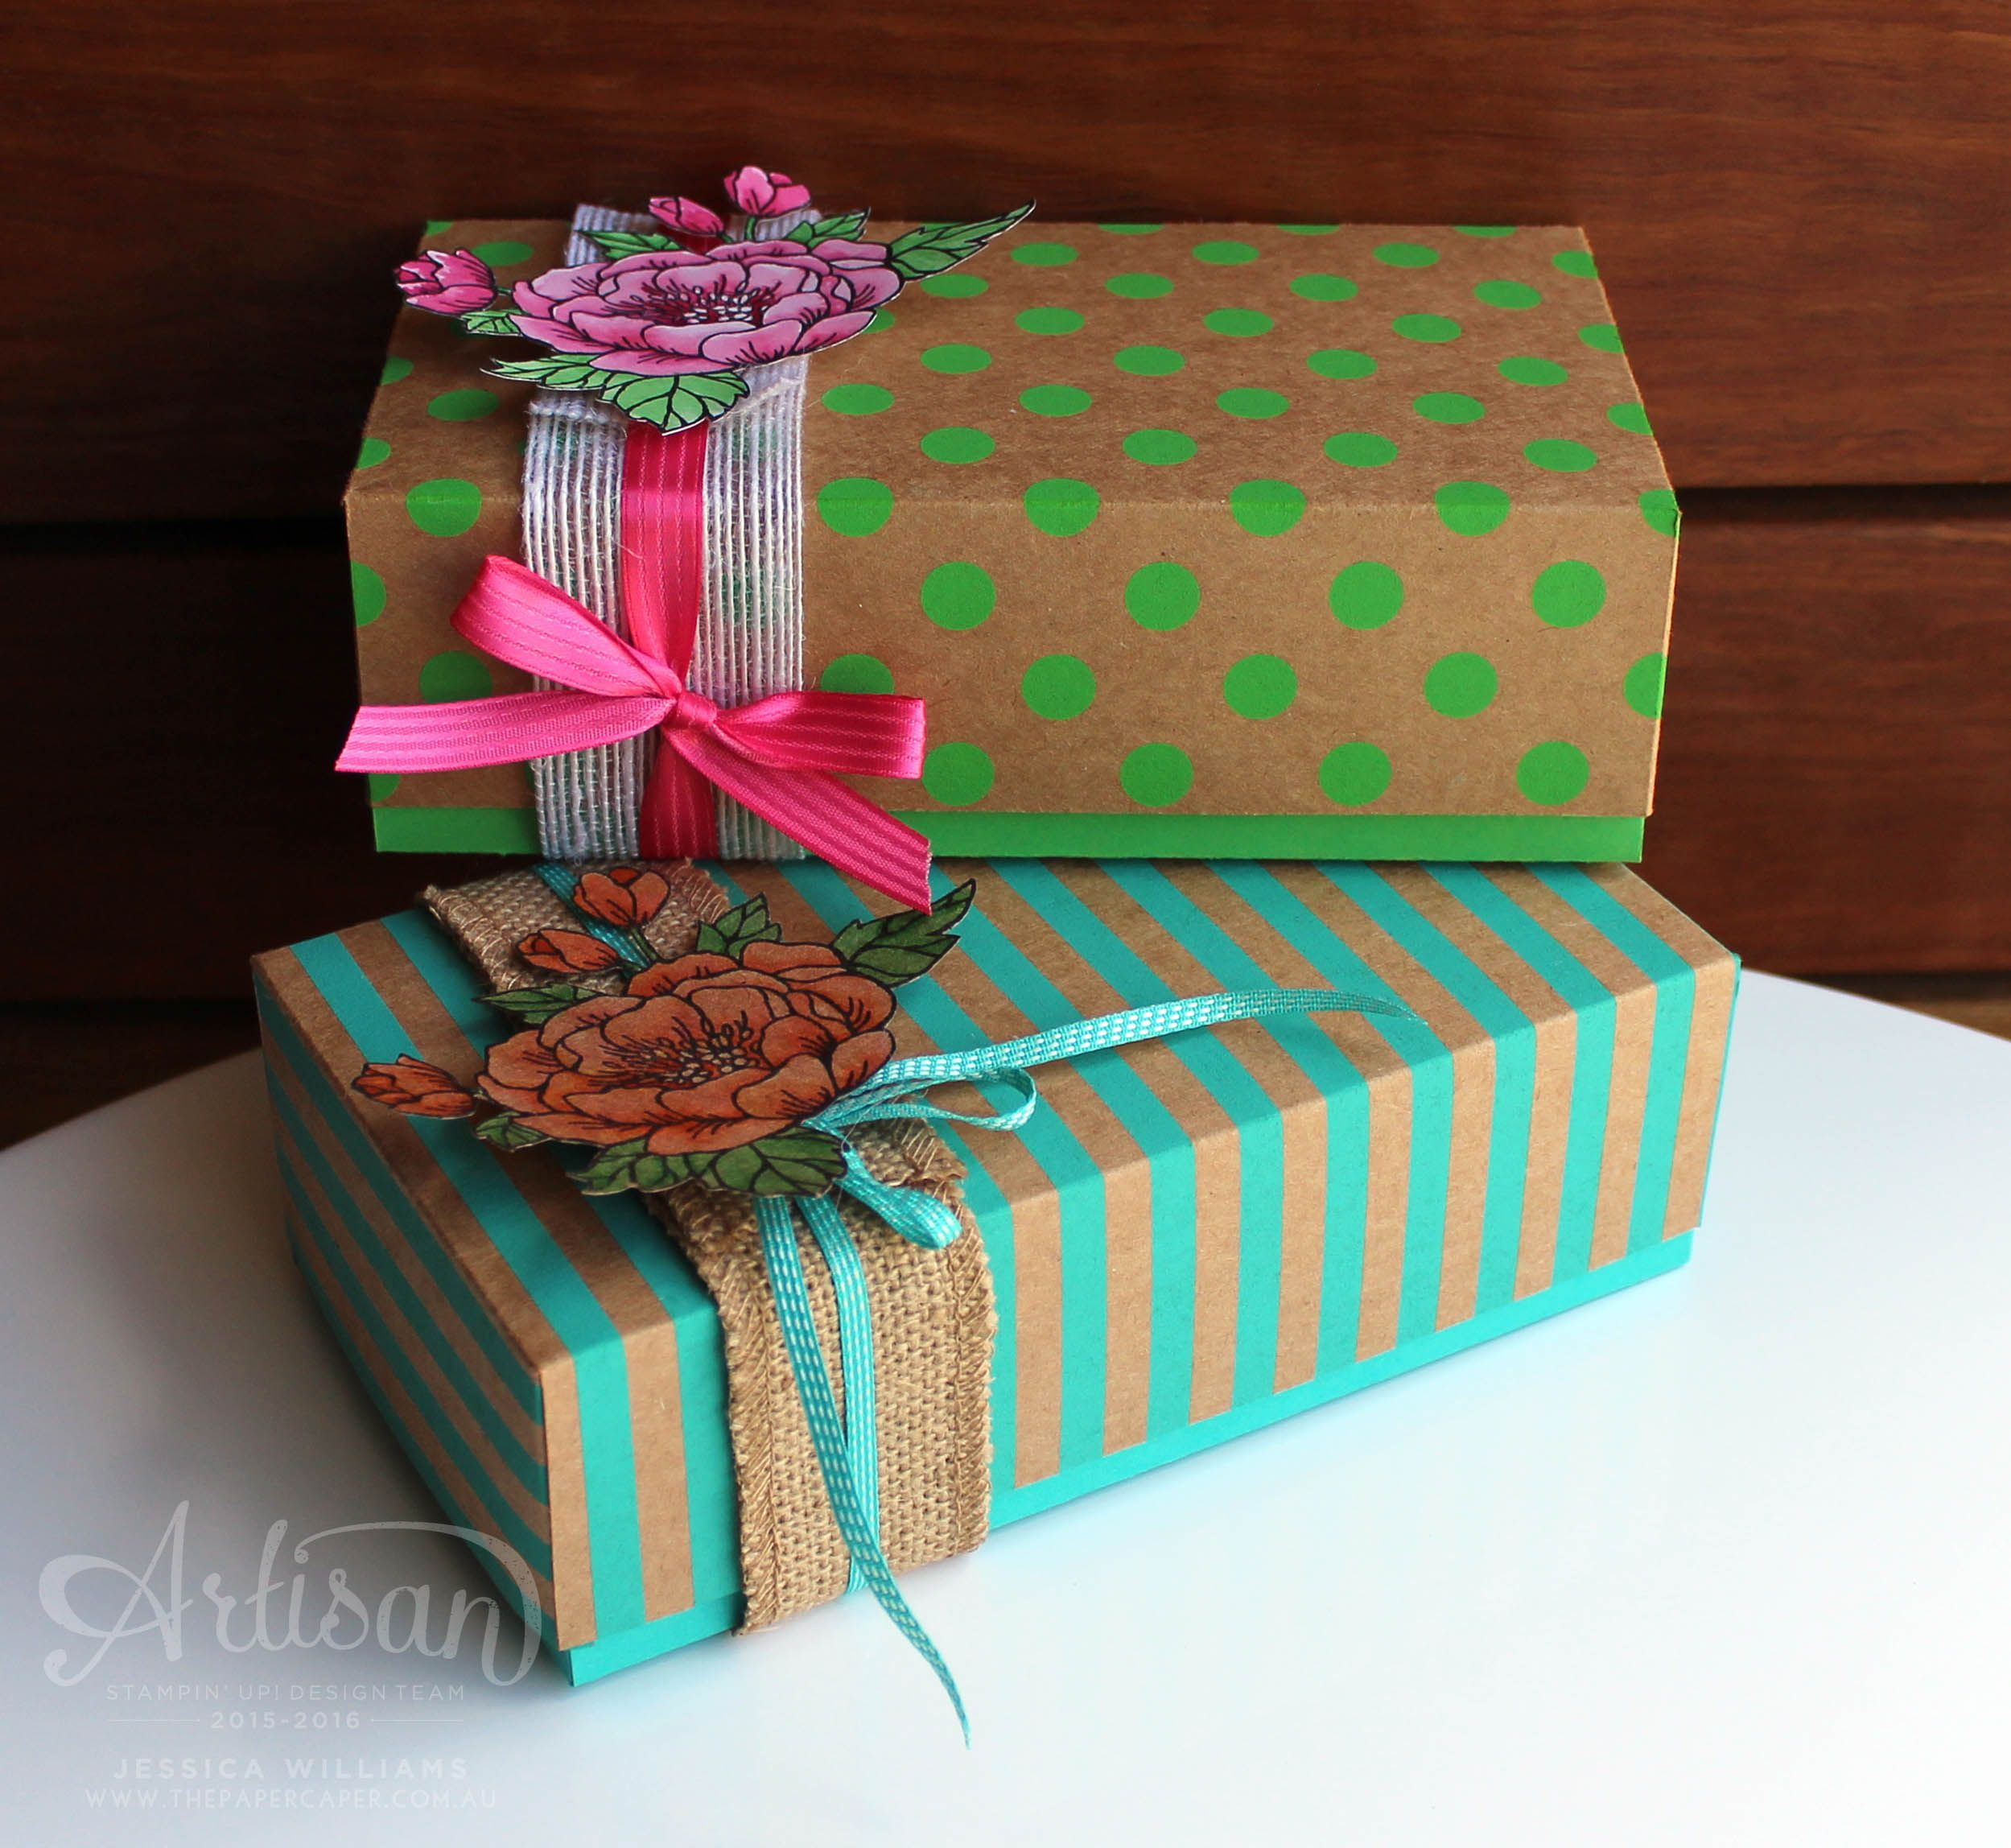 Artisan Design Team Blog Hop - Boxes and Blooms - The Paper Caper